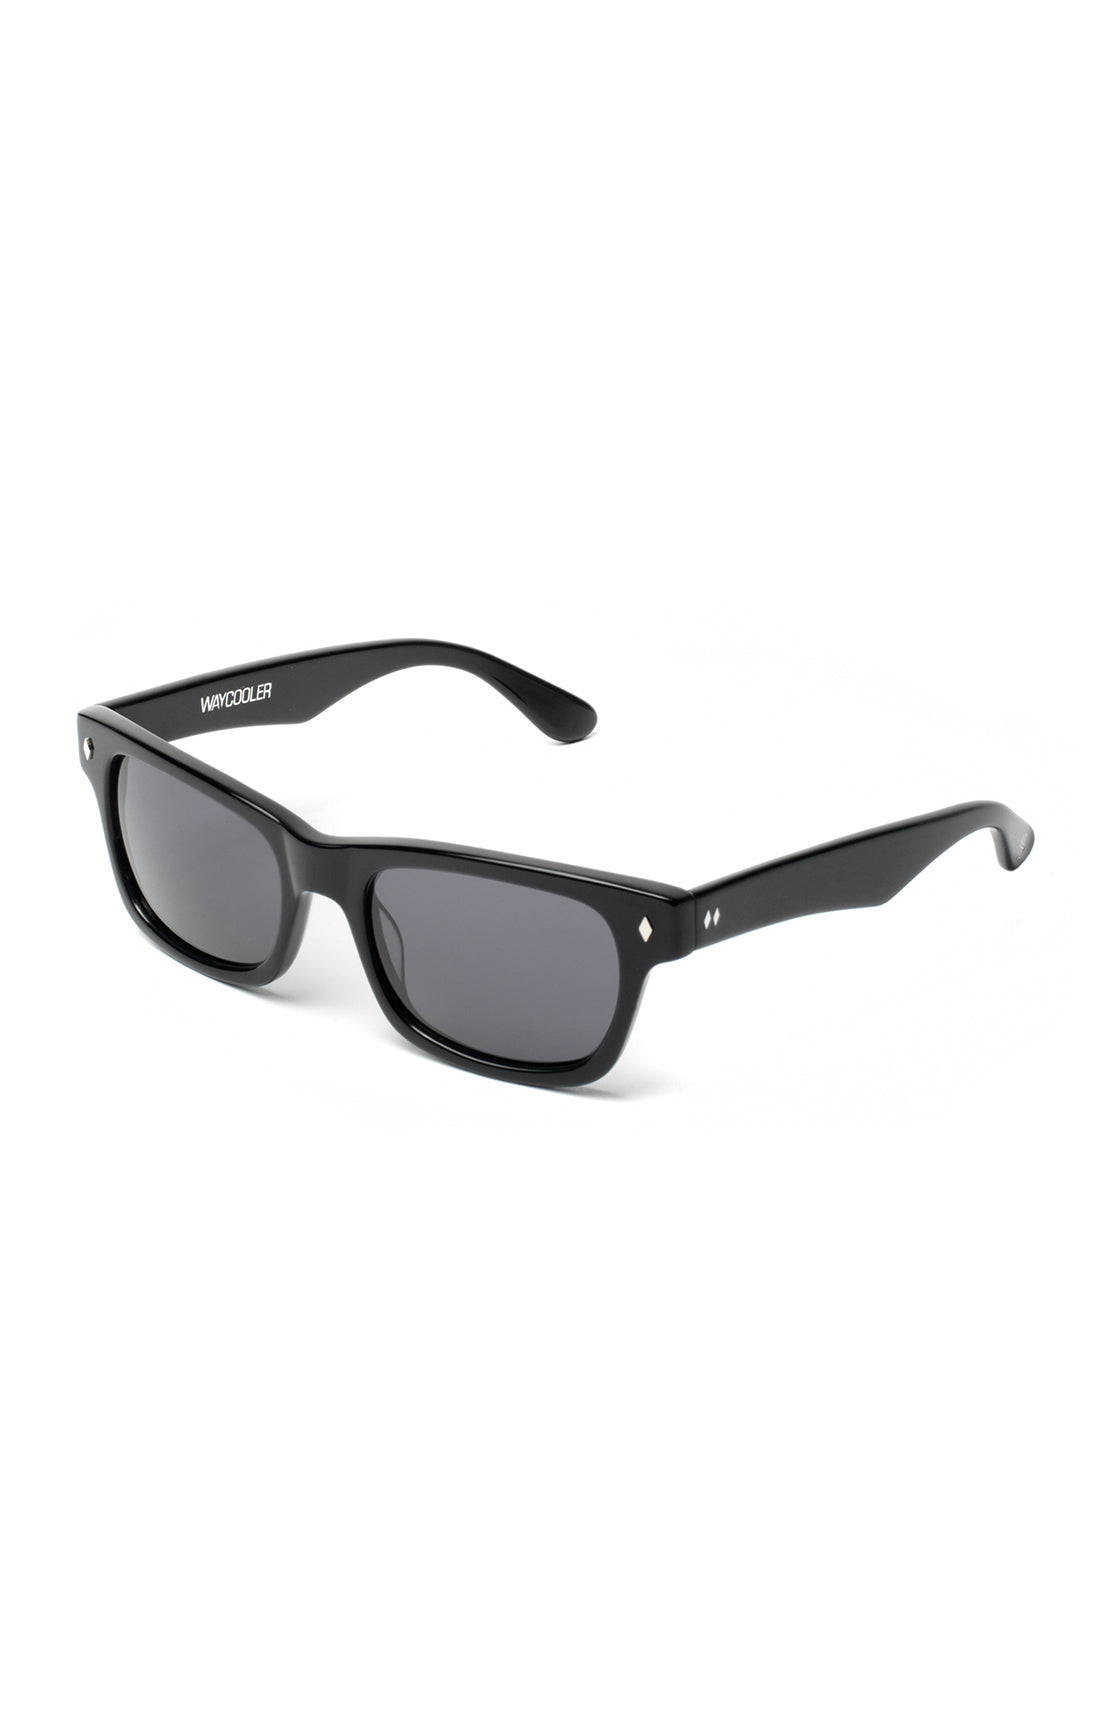 The WAYCOOLER Sunglasses by Tres Noir - Solid Black Frames w/ Smoked ...